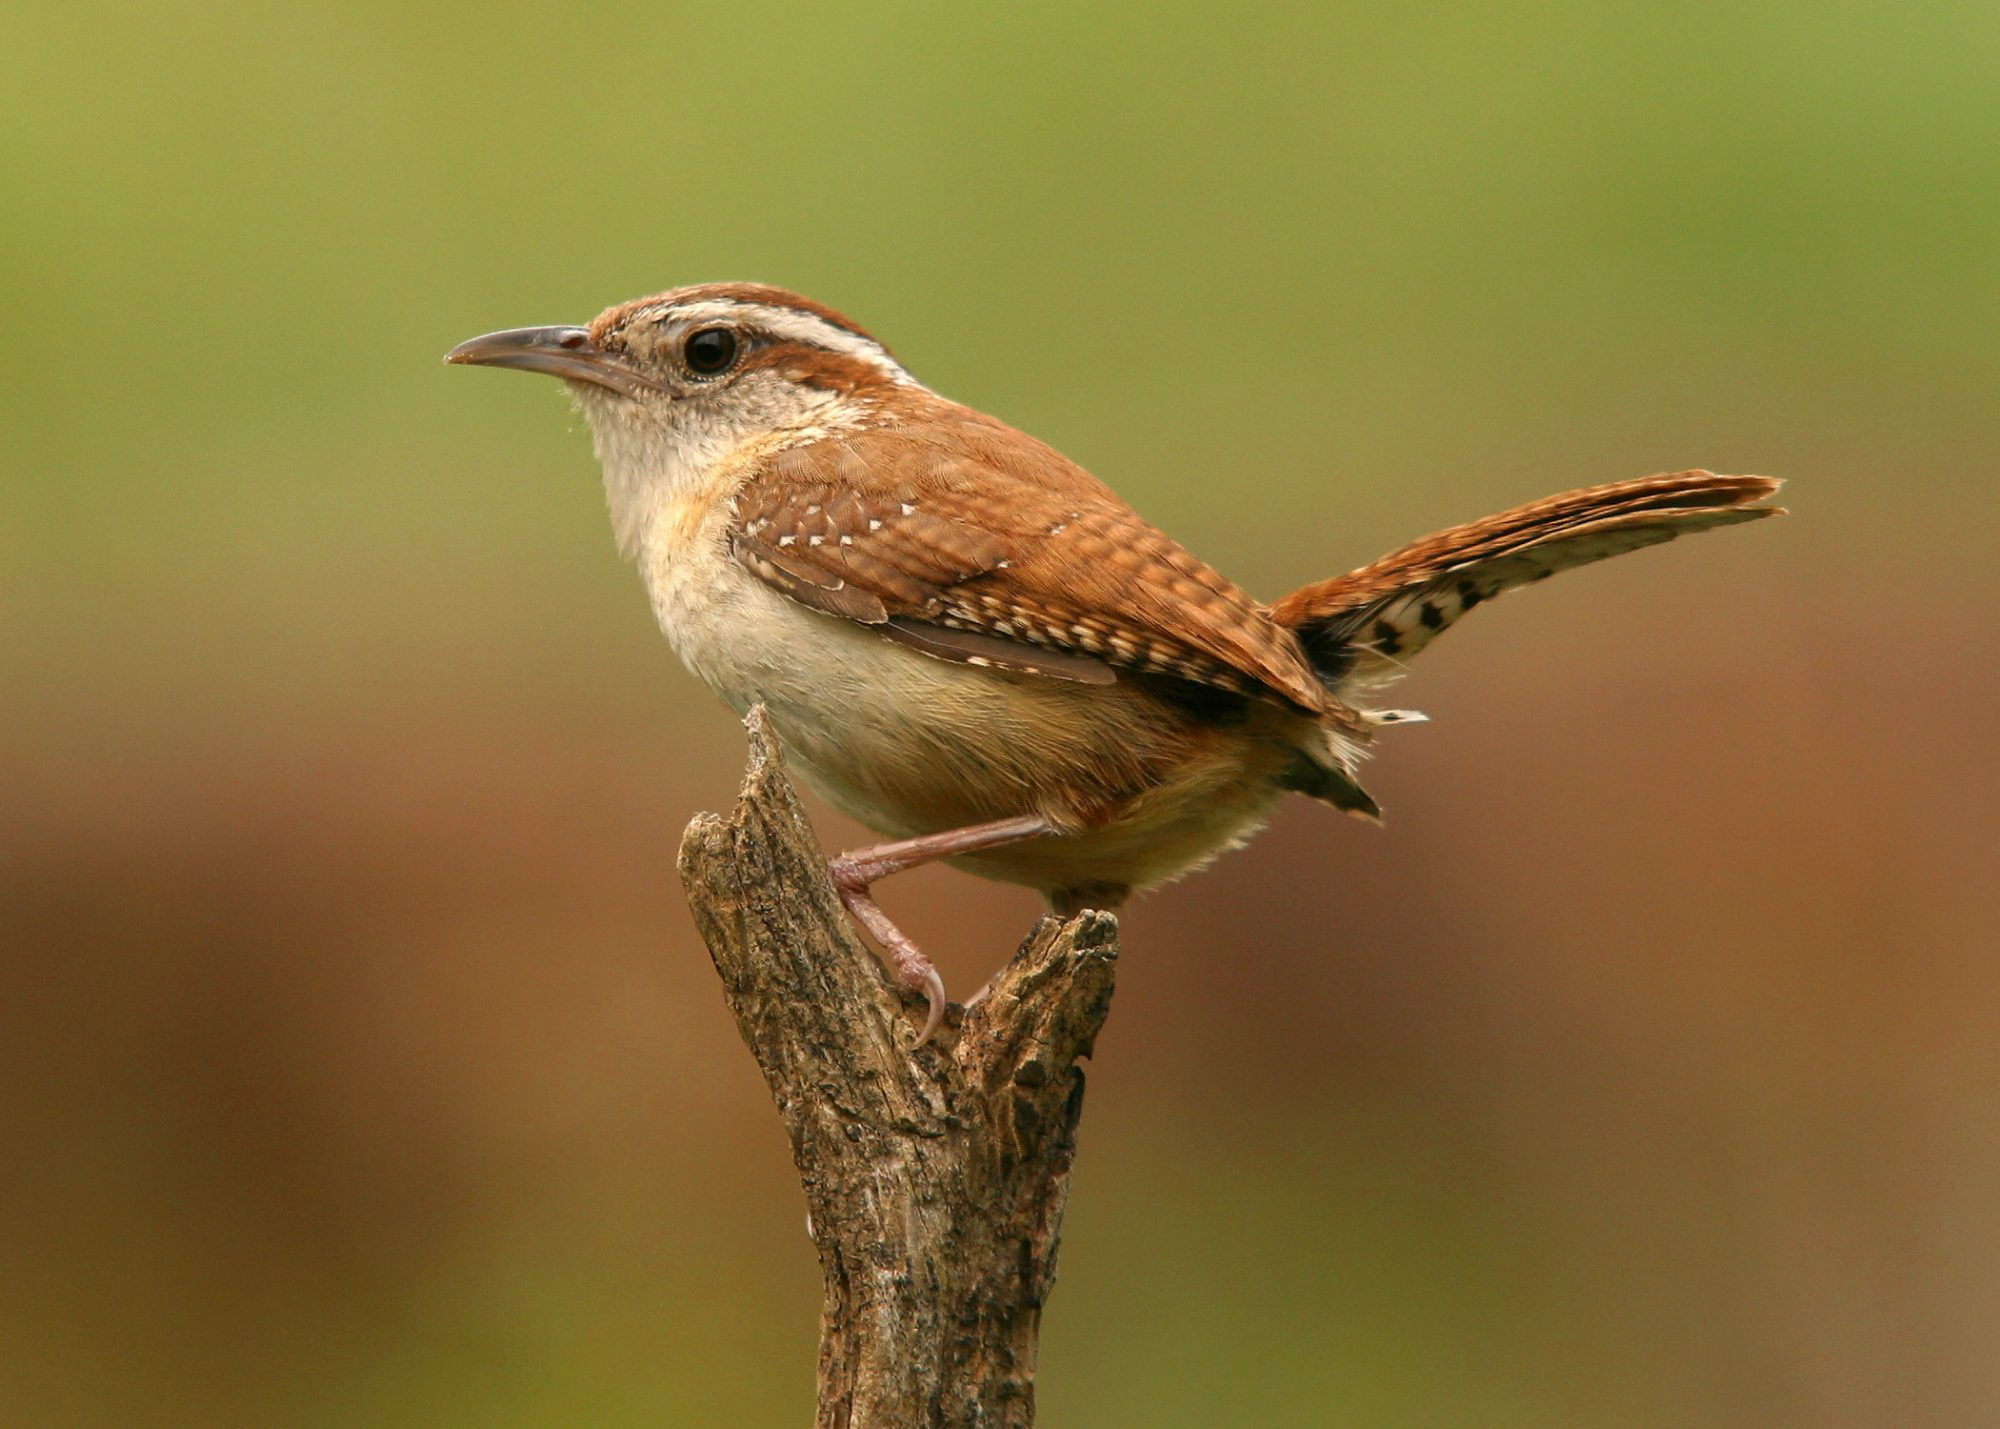 South Carolina- Carolina Wren